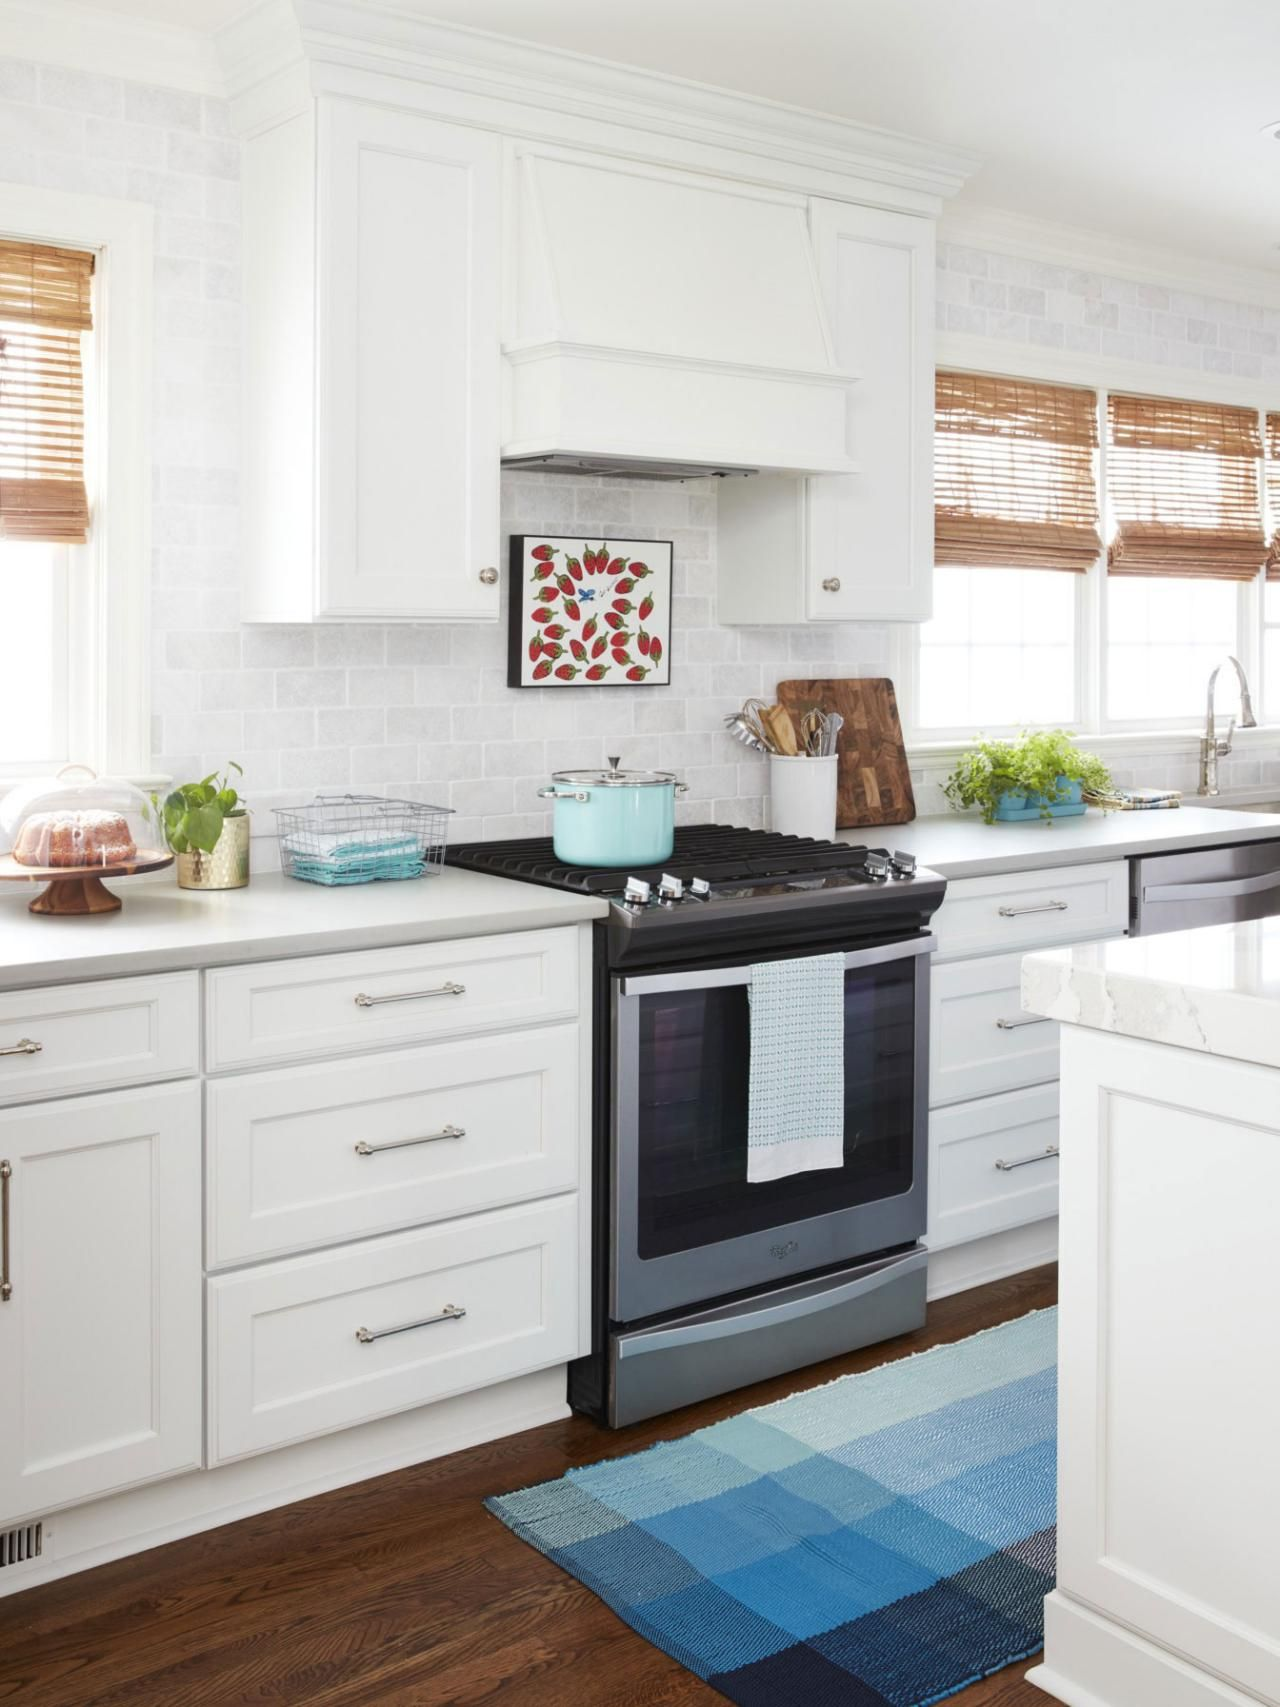 10 Lessons From A Young House Love Kitchen Reno Home Decorating